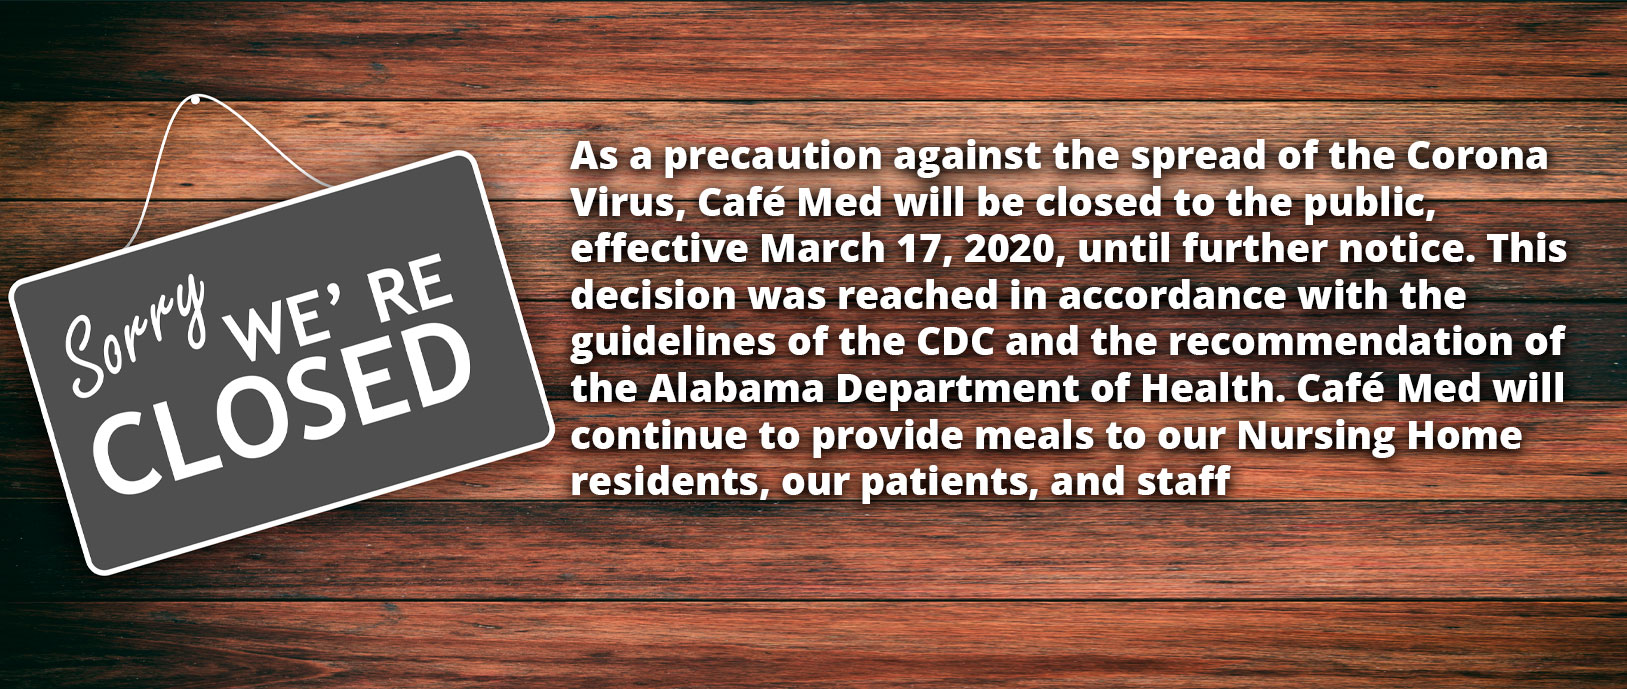 As a precaution against the spread of the Corona Virus, Café Med will be closed to the public, effective March 17, 2020, until further notice. This decision was reached in accordance with the guidelines of the CDC and the recommendation of the Alabama Department of Health. Café Med will continue to provide meals to our Nursing Home residents, our patients, and staff